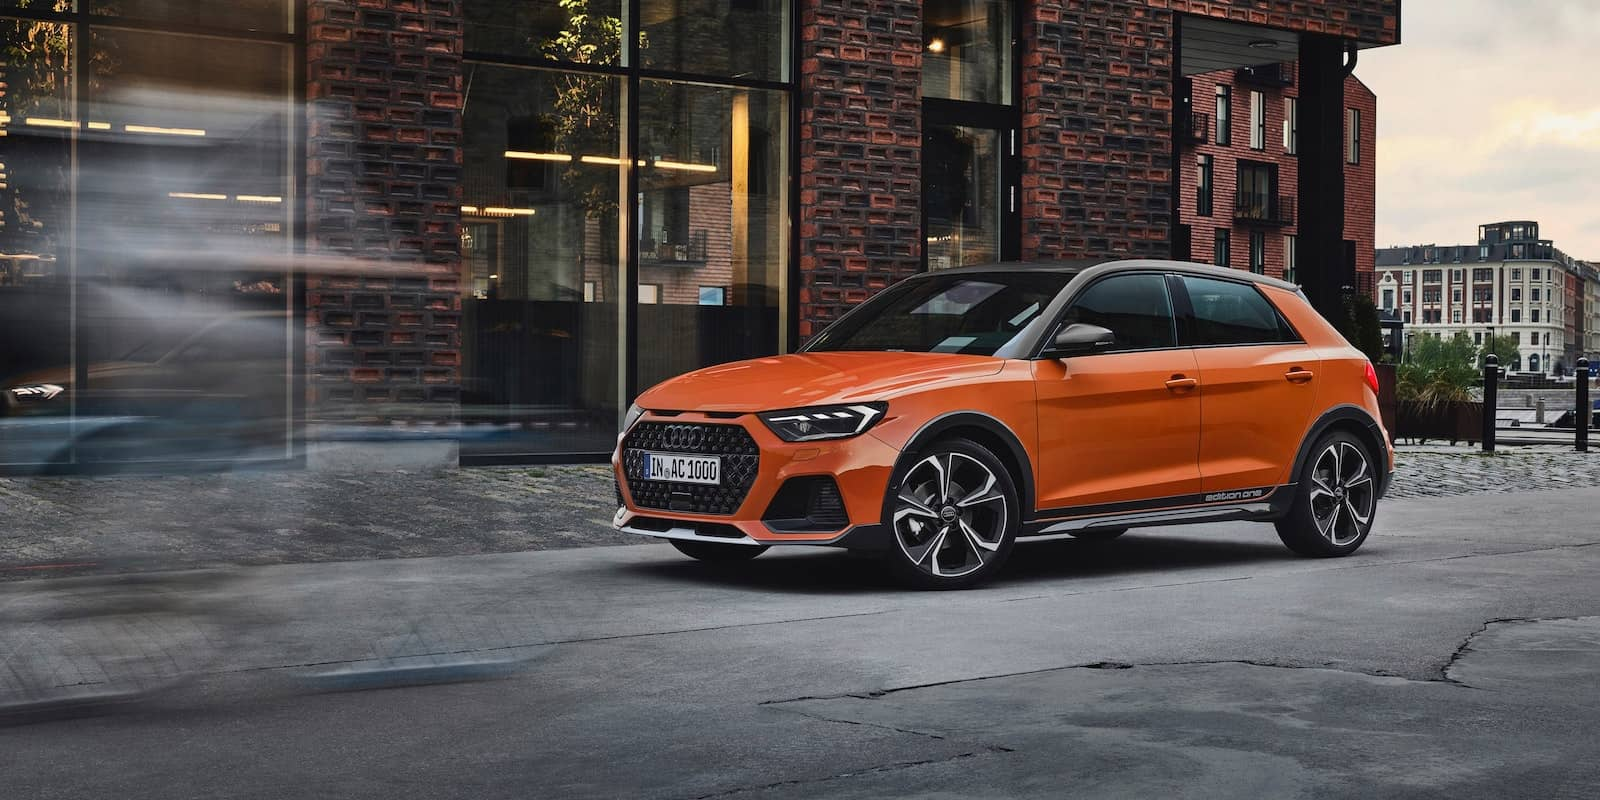 2020 Audi A1 Citycarver | July 2019 | The Car Expert